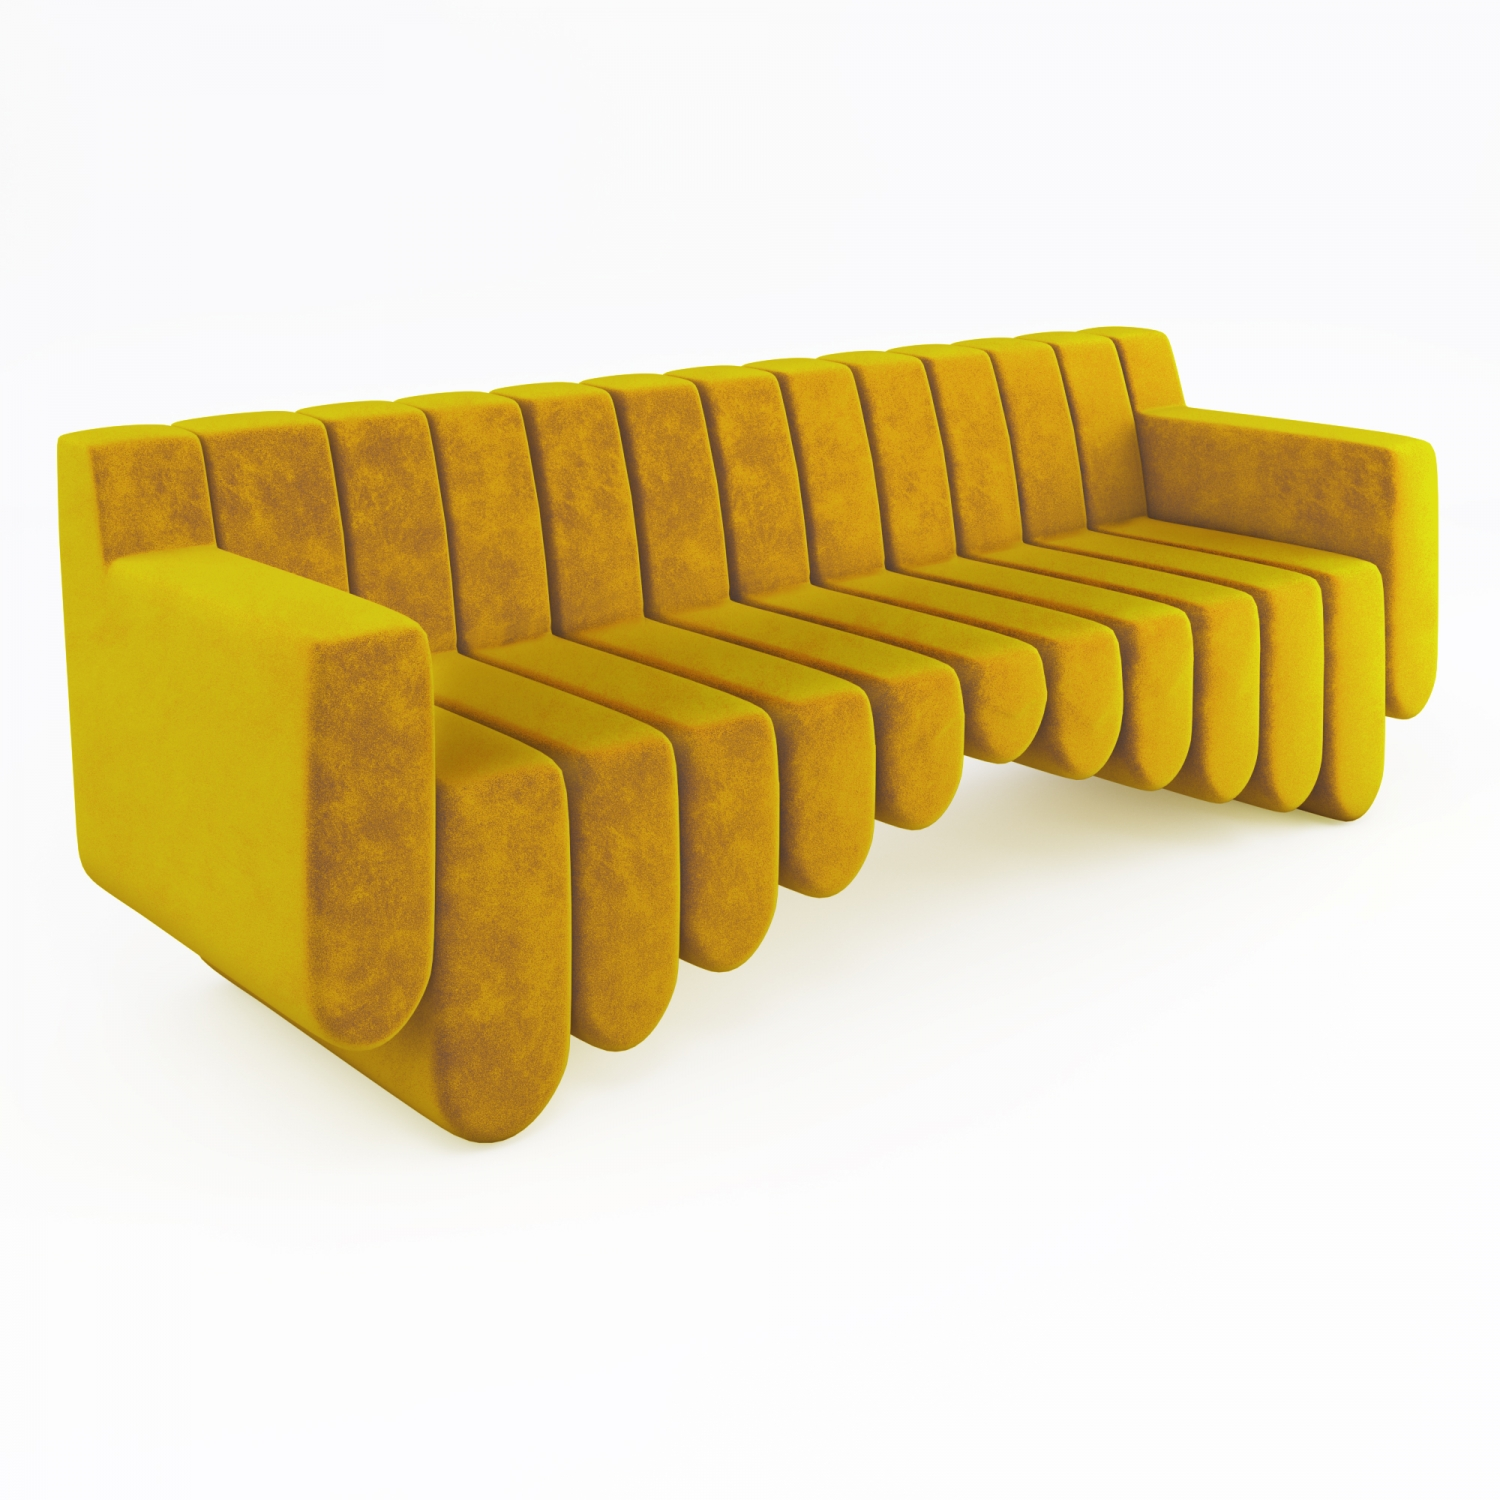 Product Visualisation for a Gorgeous Yellow Sofa